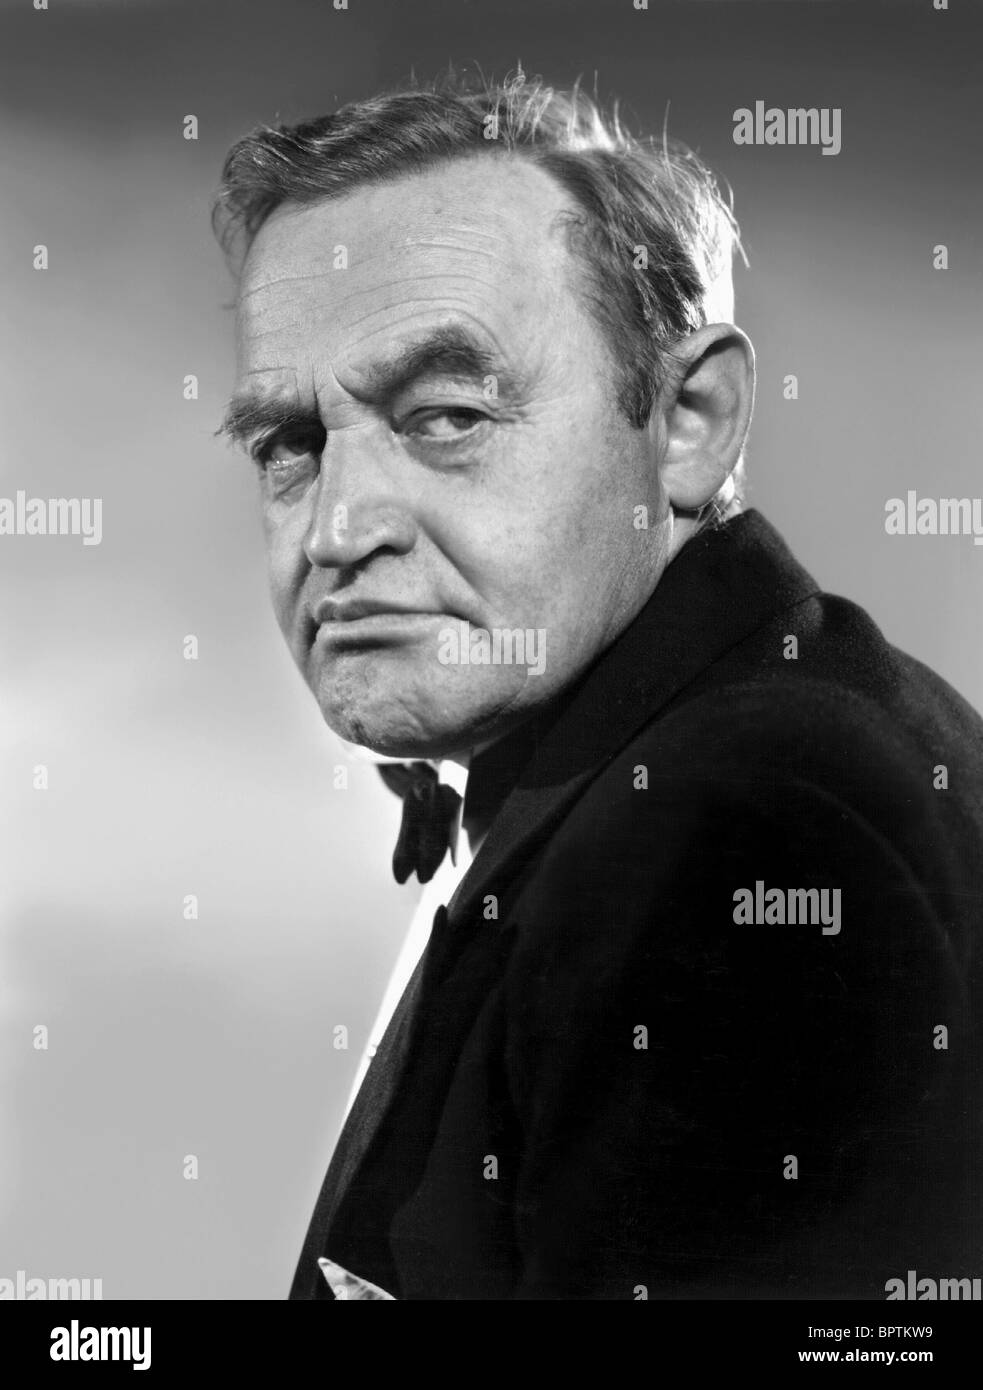 BARRY FITZGERALD ACTOR (1948) - Stock Image